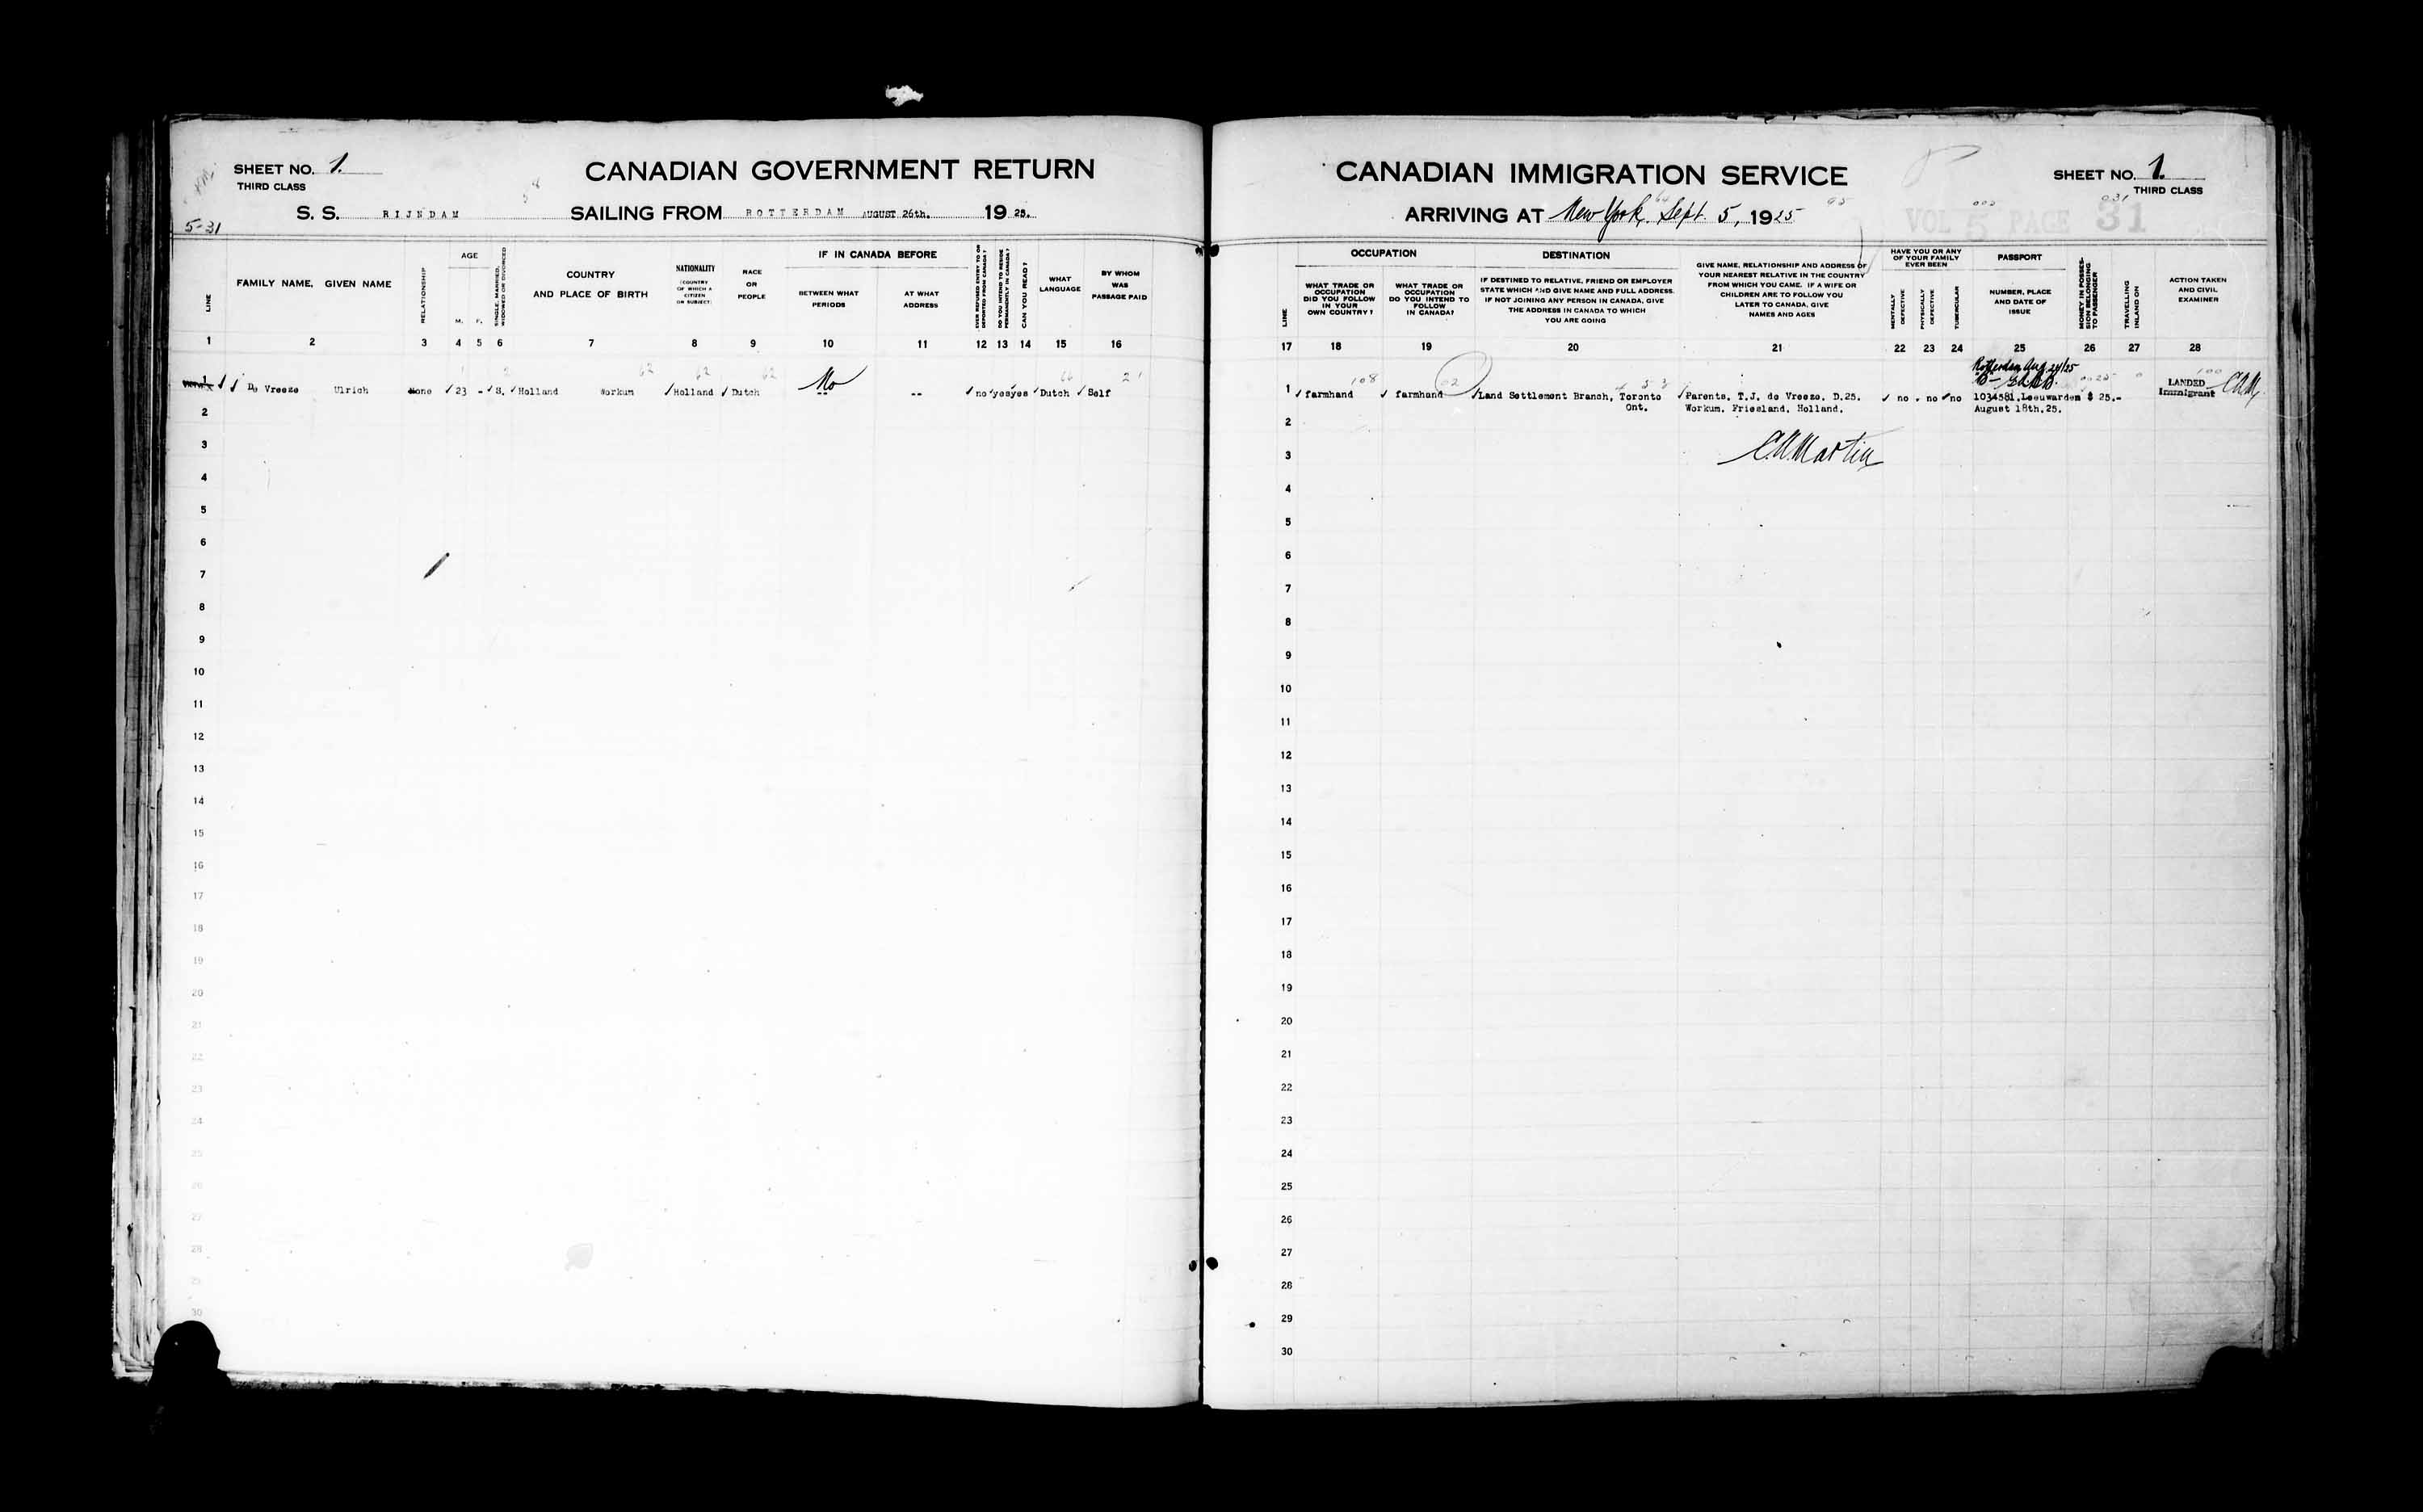 Title: Passenger Lists: New York (1925-1935) - Mikan Number: 161343 - Microform: t-14925